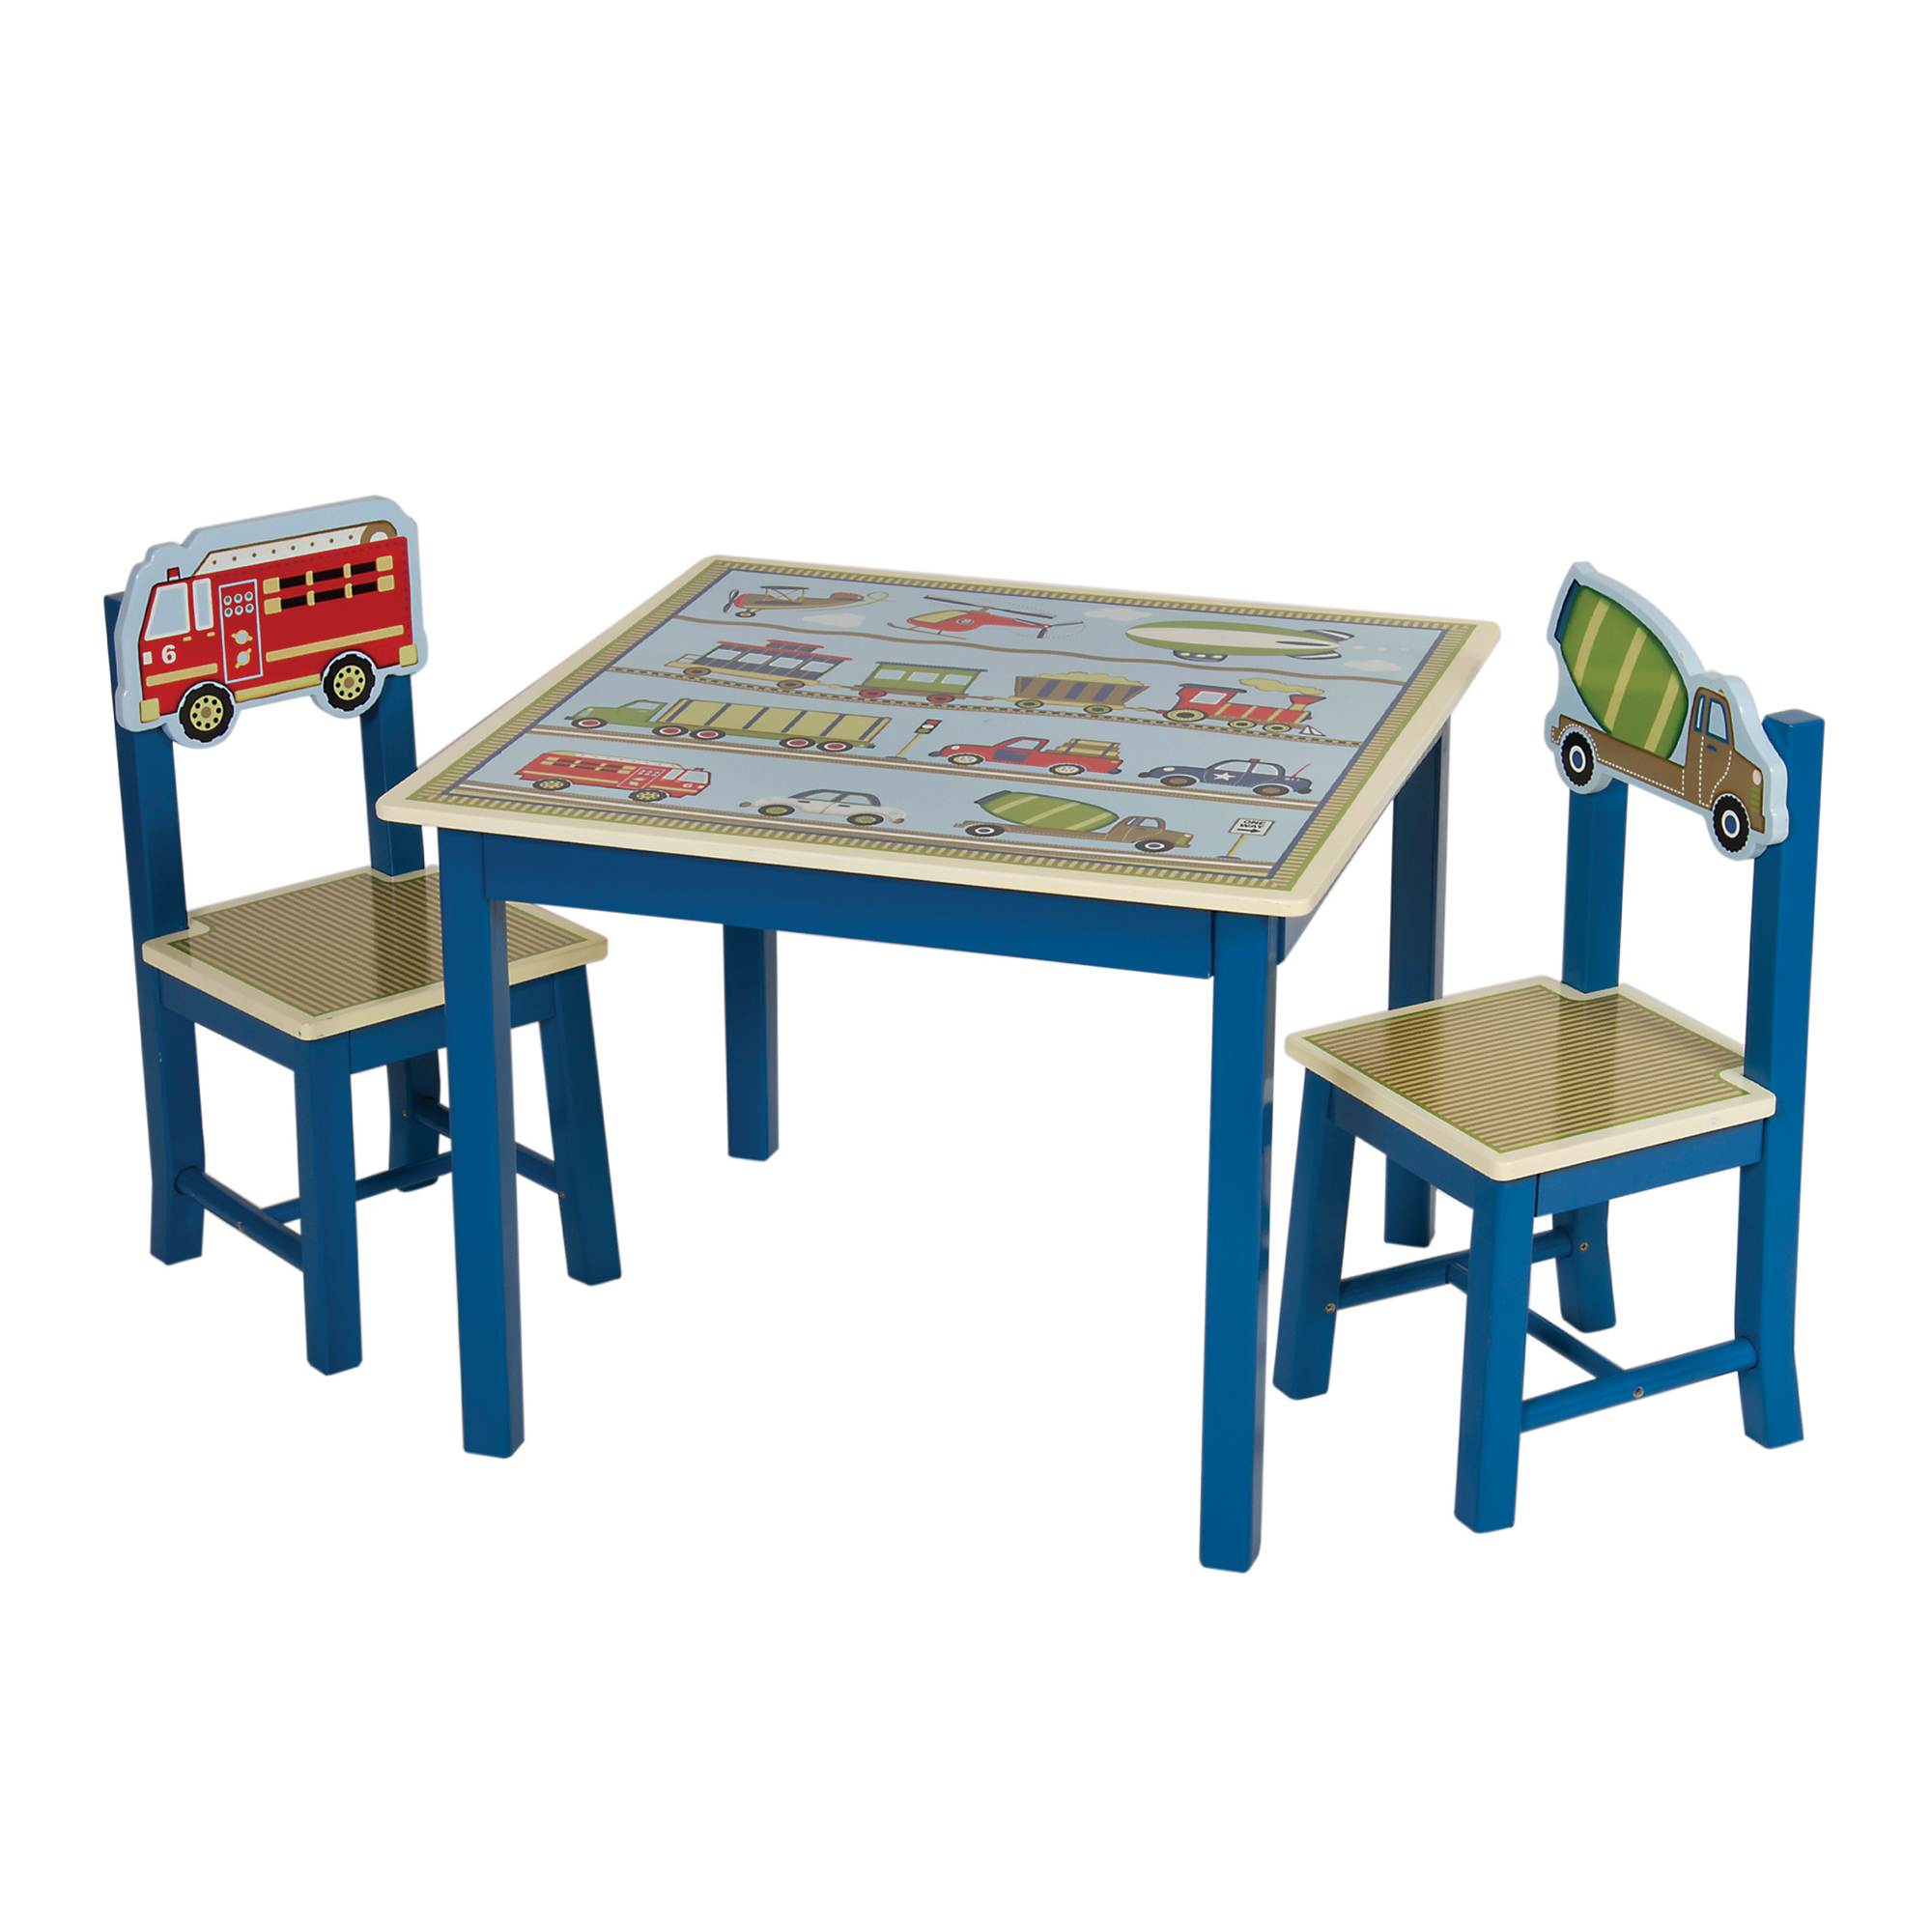 Table And Chairs Walmart: Moving All Around Table And Chairs Set